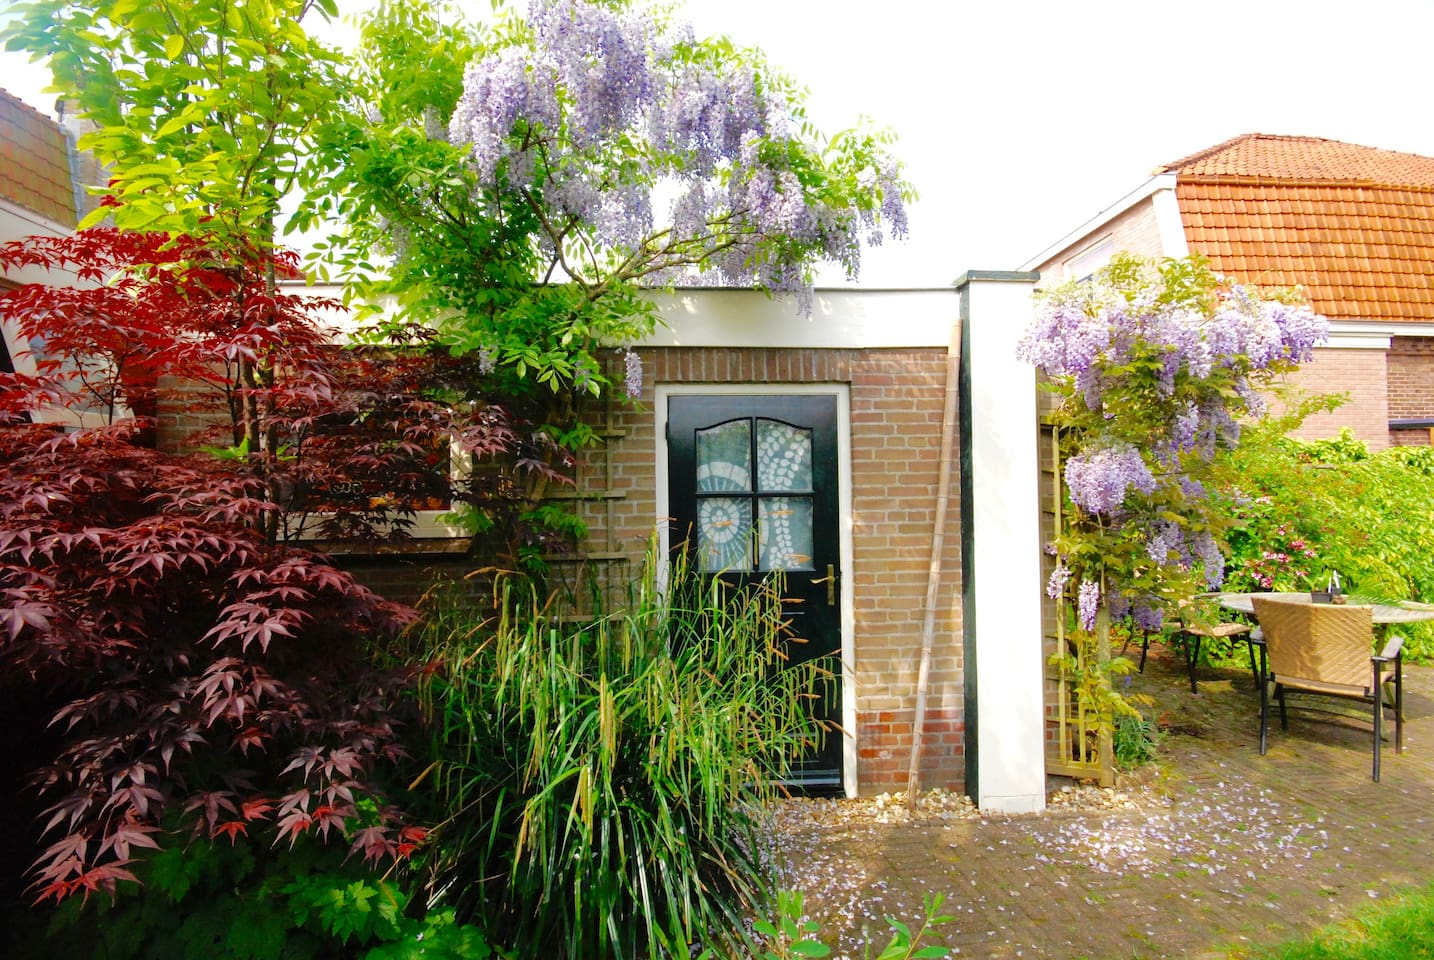 It is a studio apartment in our garden converted for our guests. In the early summer, the beautiful wisteria violet will welcome you at the entrance...